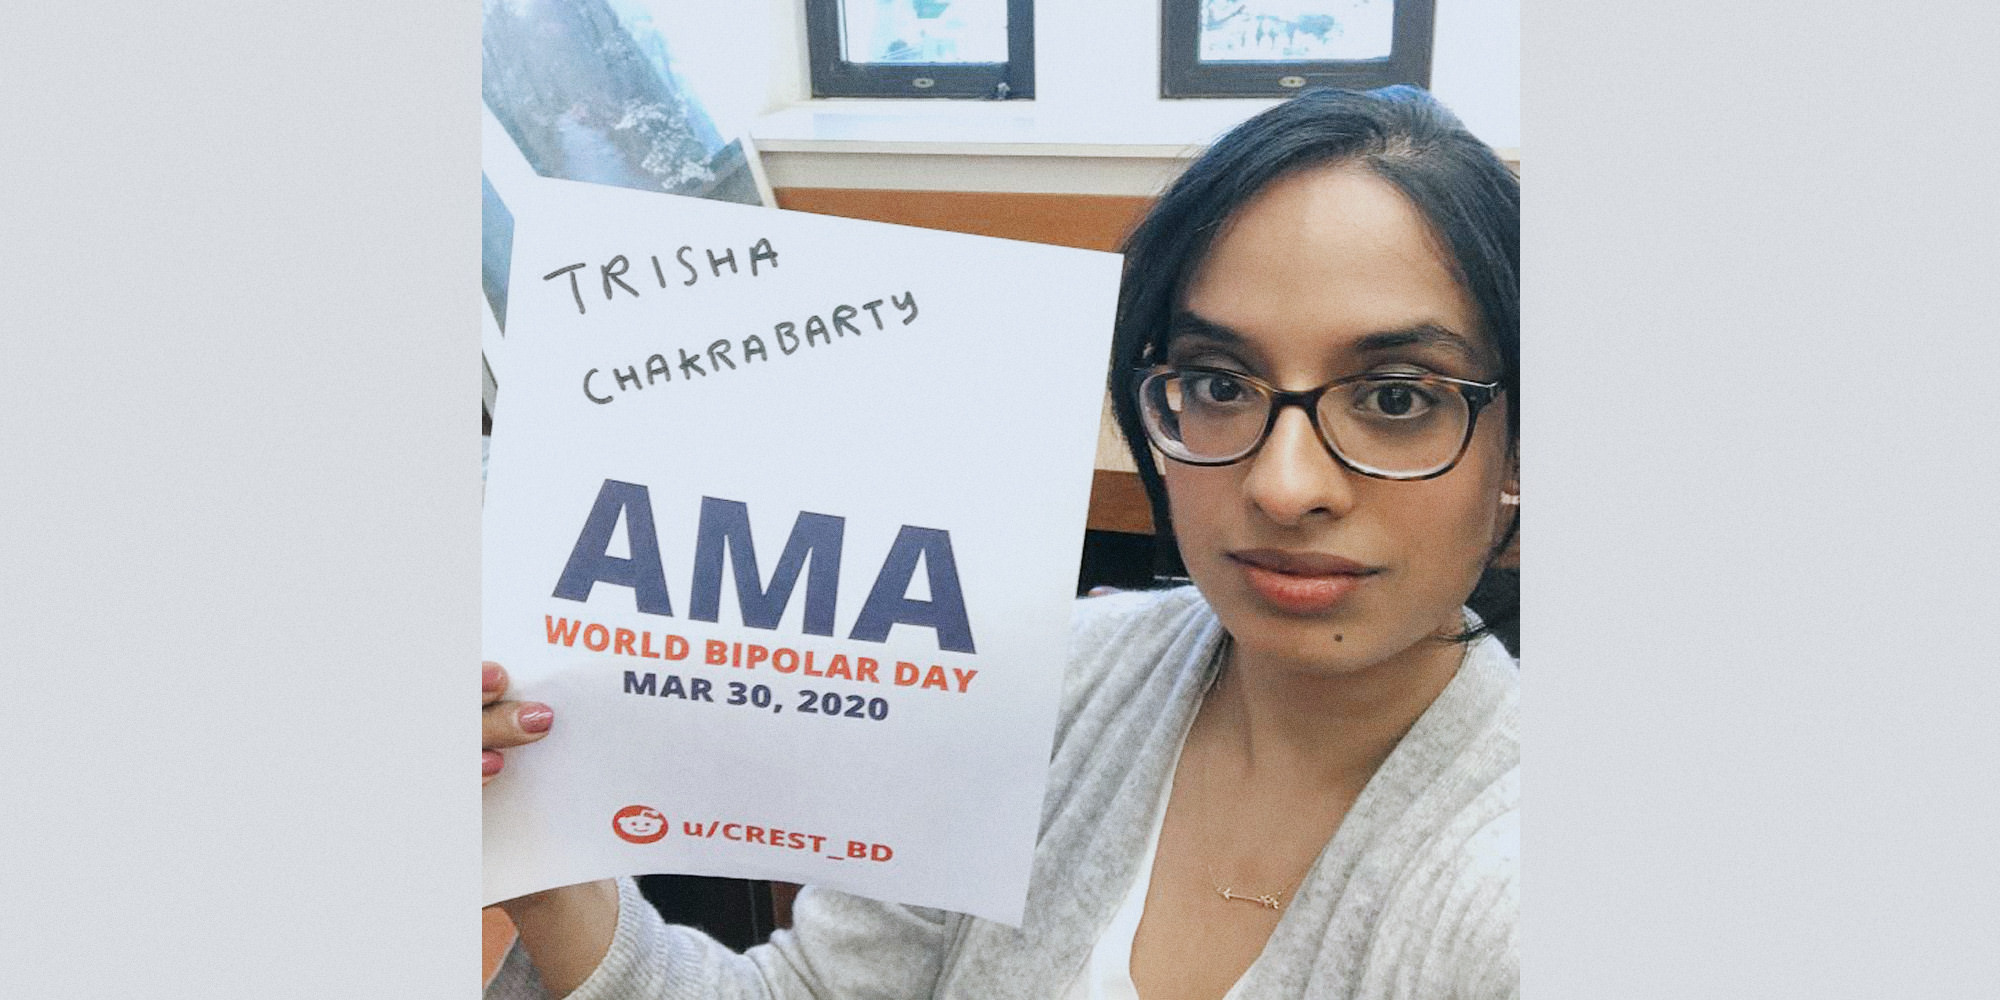 Trisha sitting in an office, looking upwards at the camera and holding a proof sign.